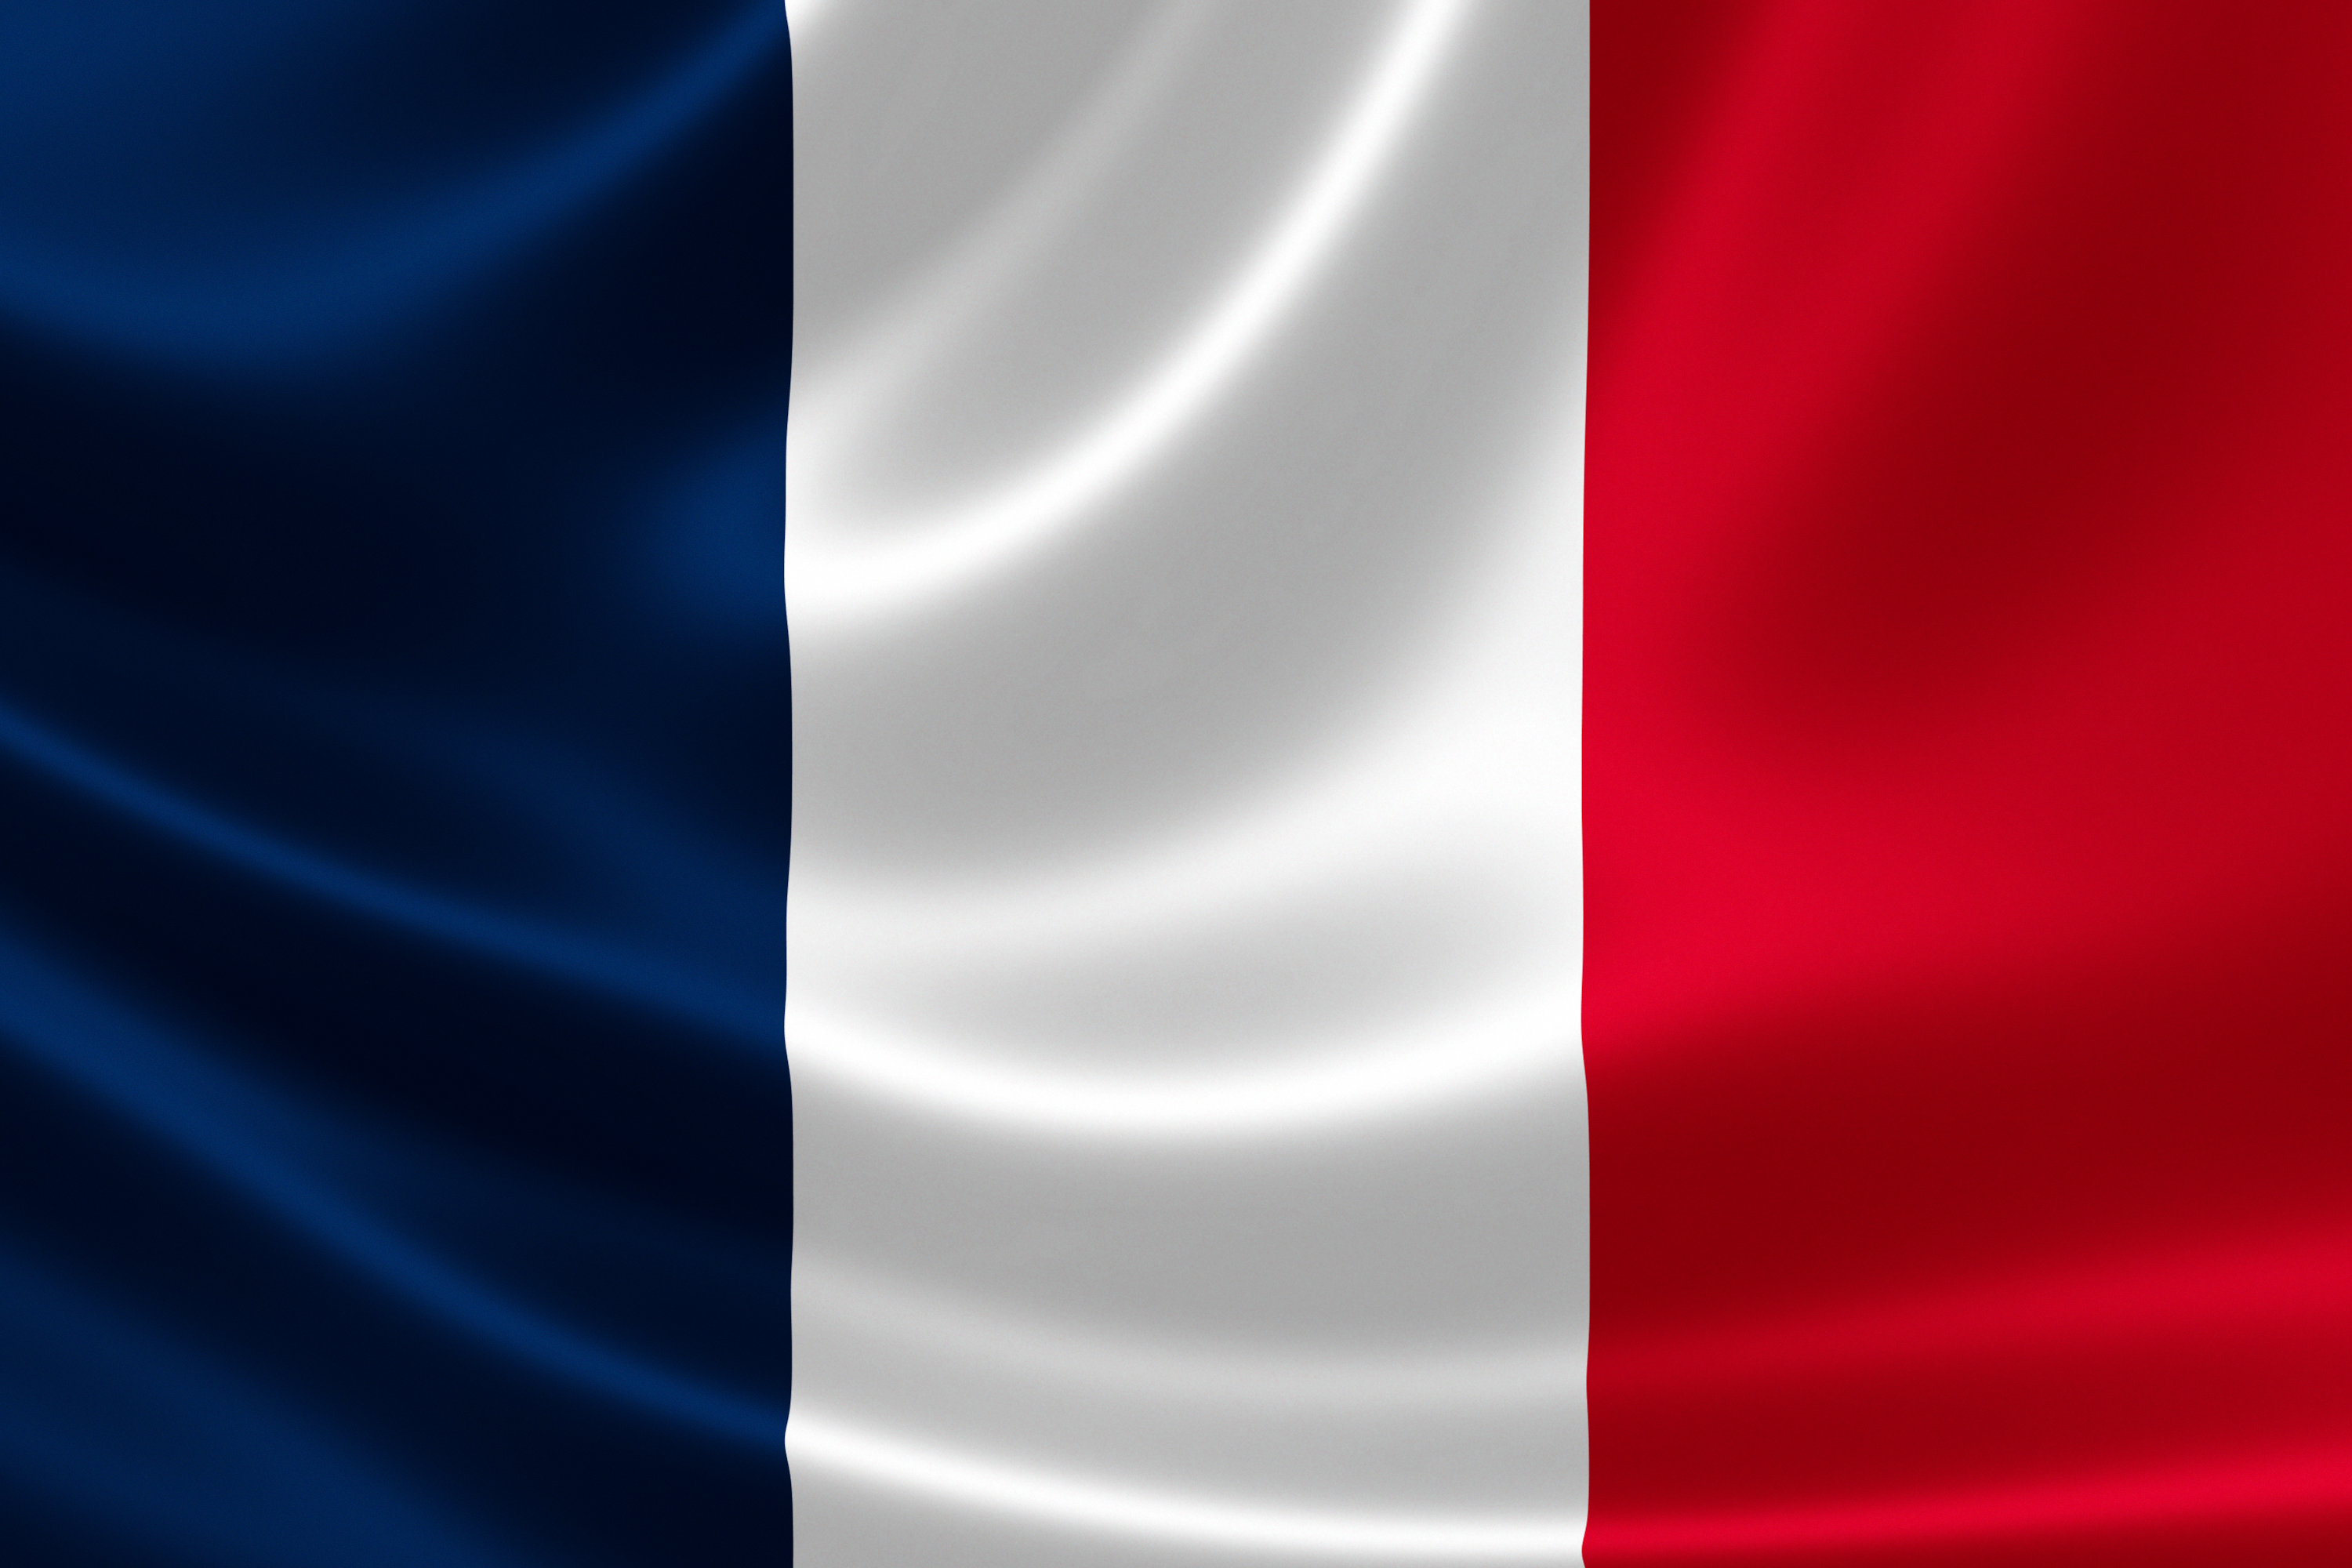 3D rendition of the flag of France on silky fabric.